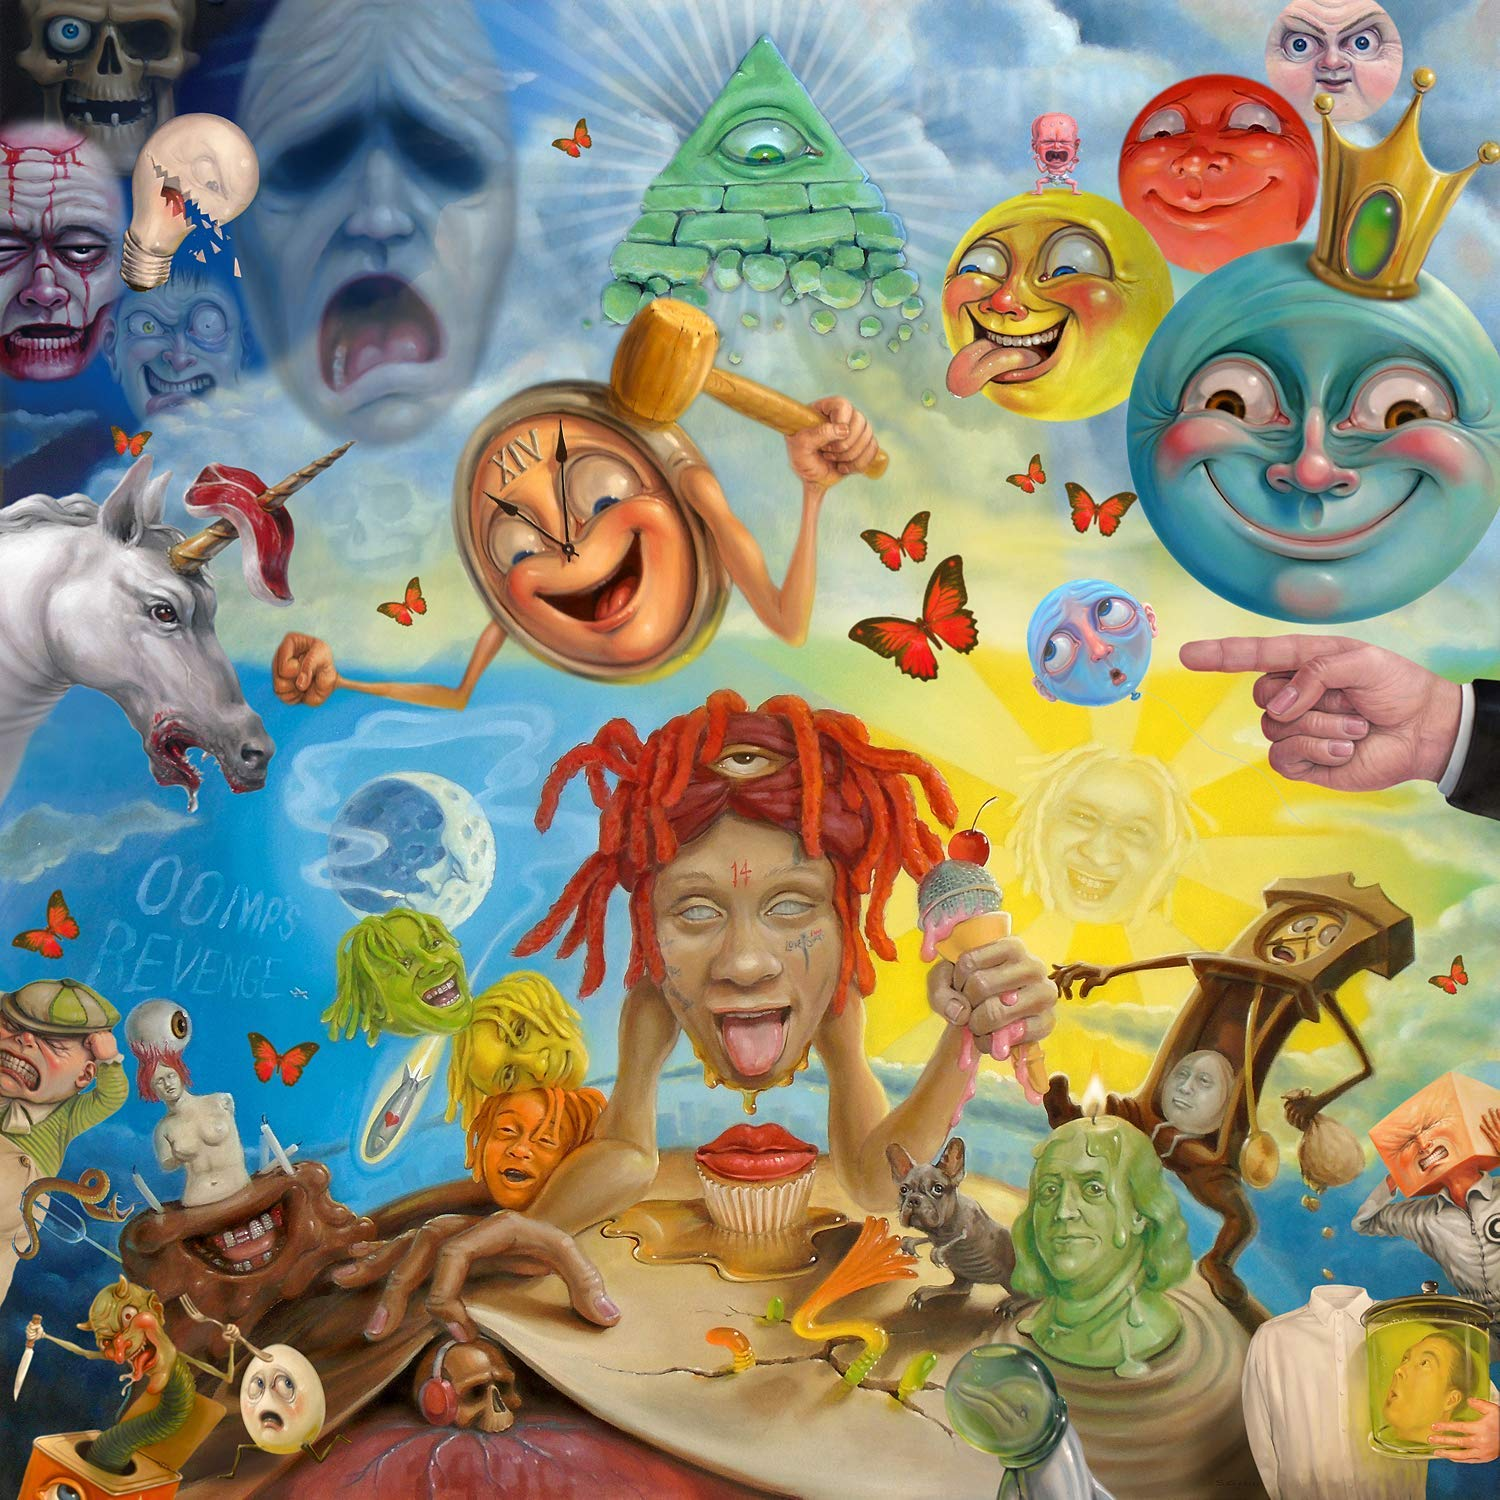 Lifes A Trip Music giclee Record LP Reprint 12x12 chronical collection Album Cover Poster Thick TRIPPIE REDD